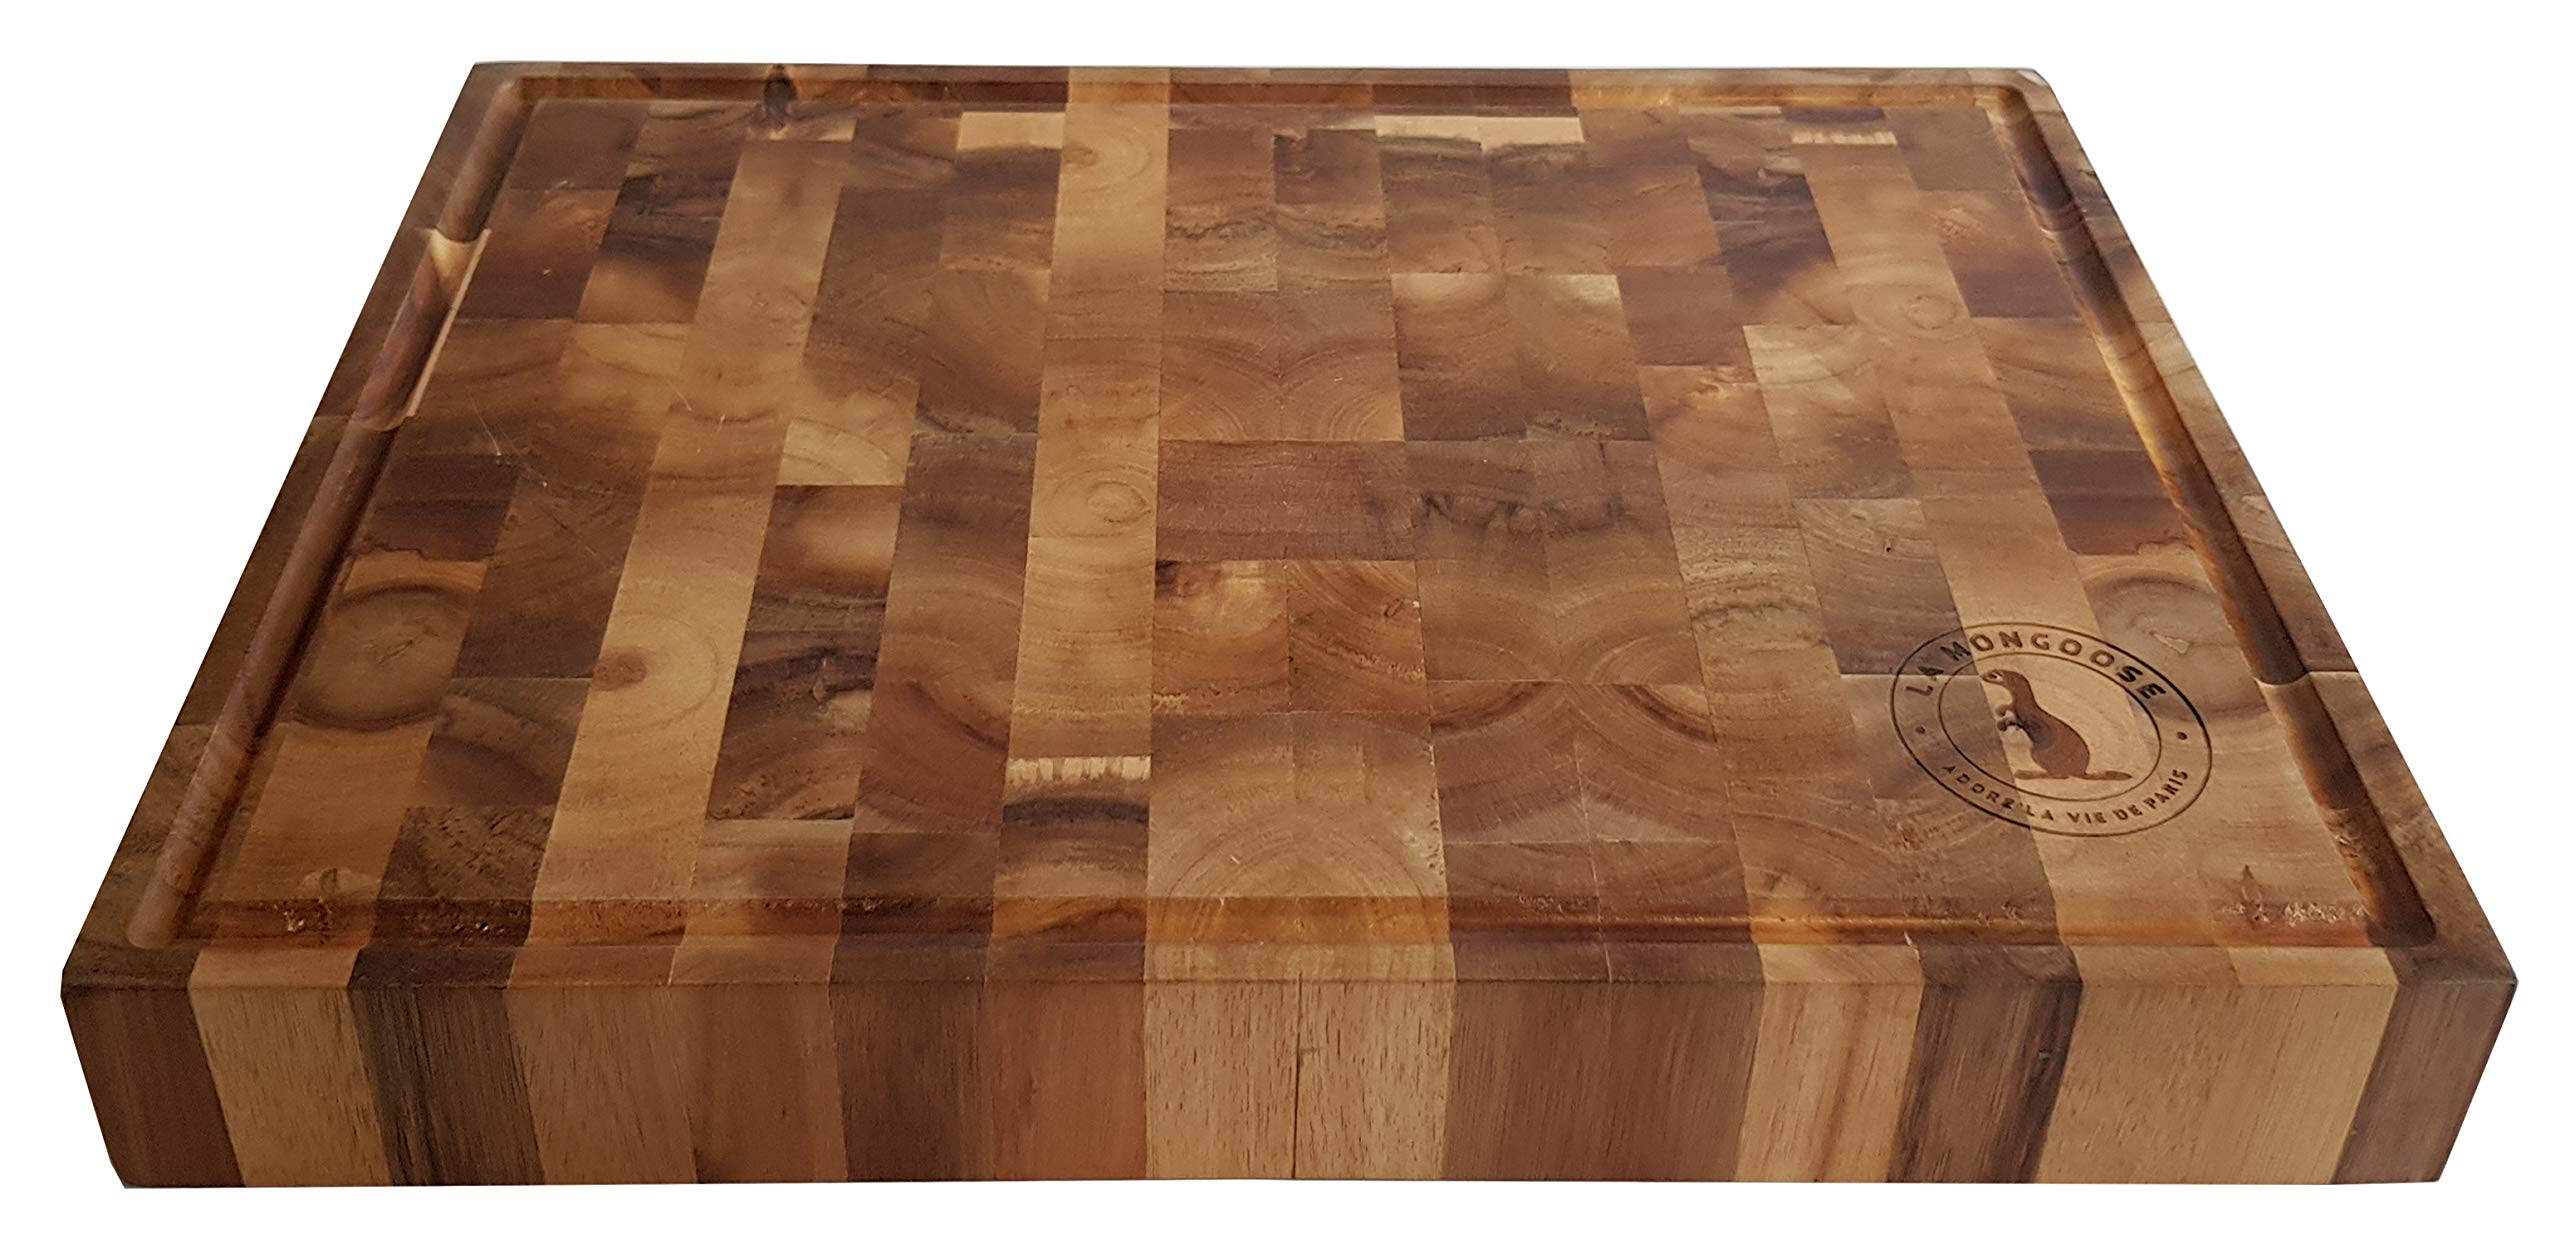 Extra Large Thick Acacia Wood Cutting Board 17 x 13 x 2 inches by La Mongoose. Juice Groove and Hand Grips Reversible Anti Microbial Solid Sturdy End Grain Butchers Block Chopping Serving Tray Platter by La Mongoose (Image #8)